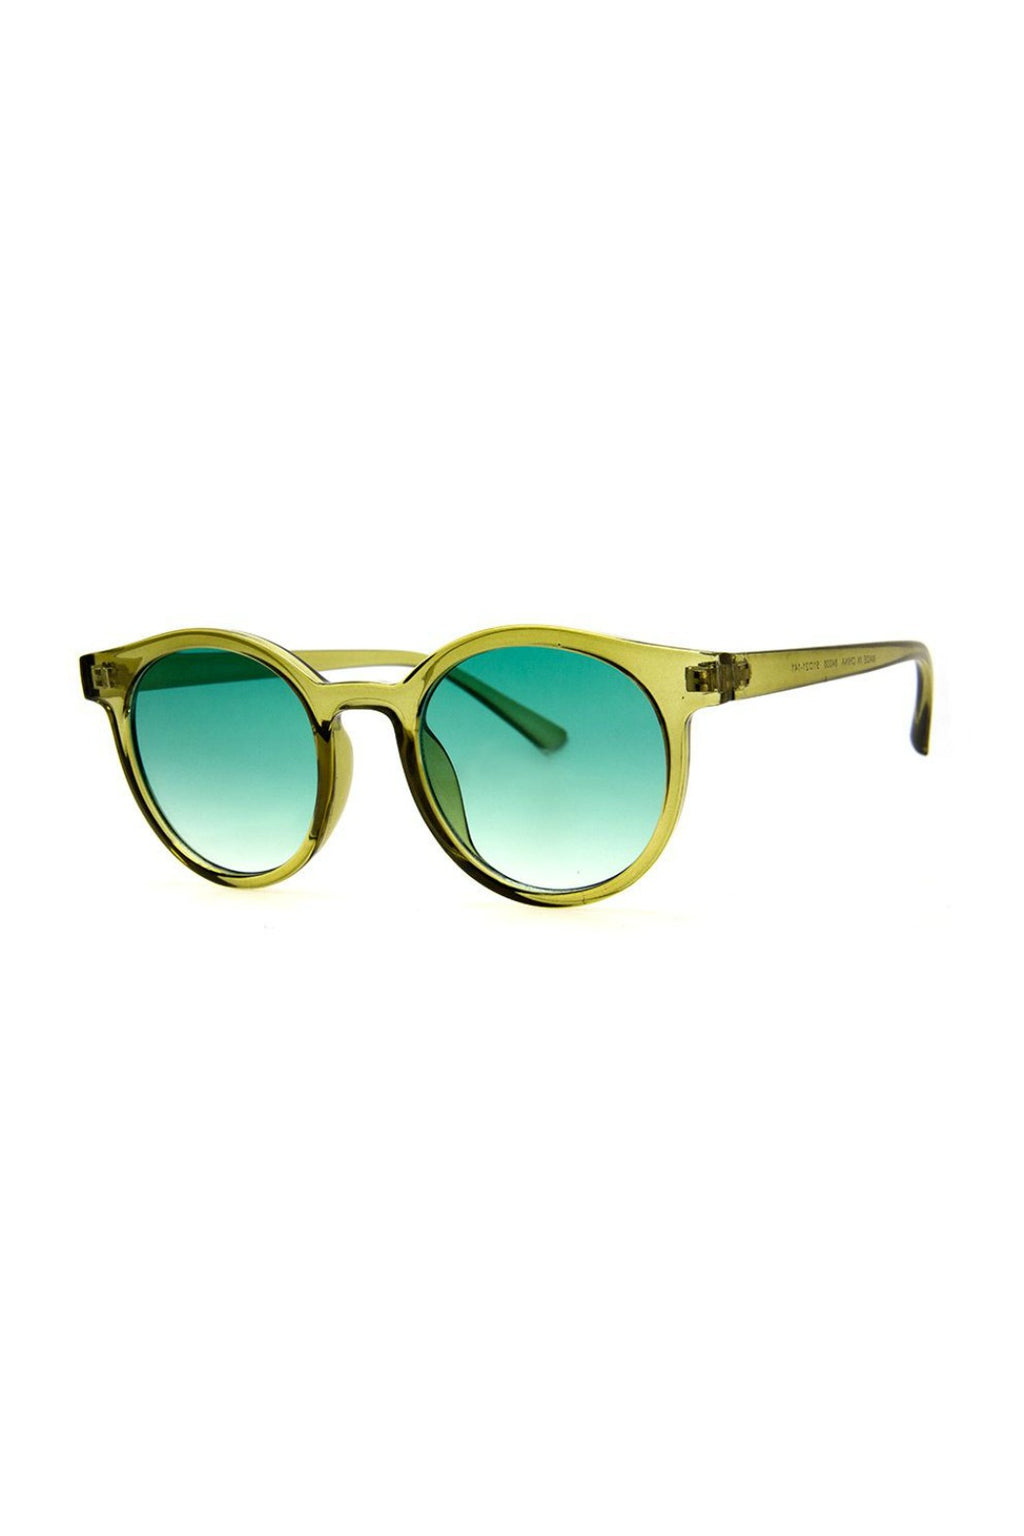 Low Key Sunnies - Olive Green